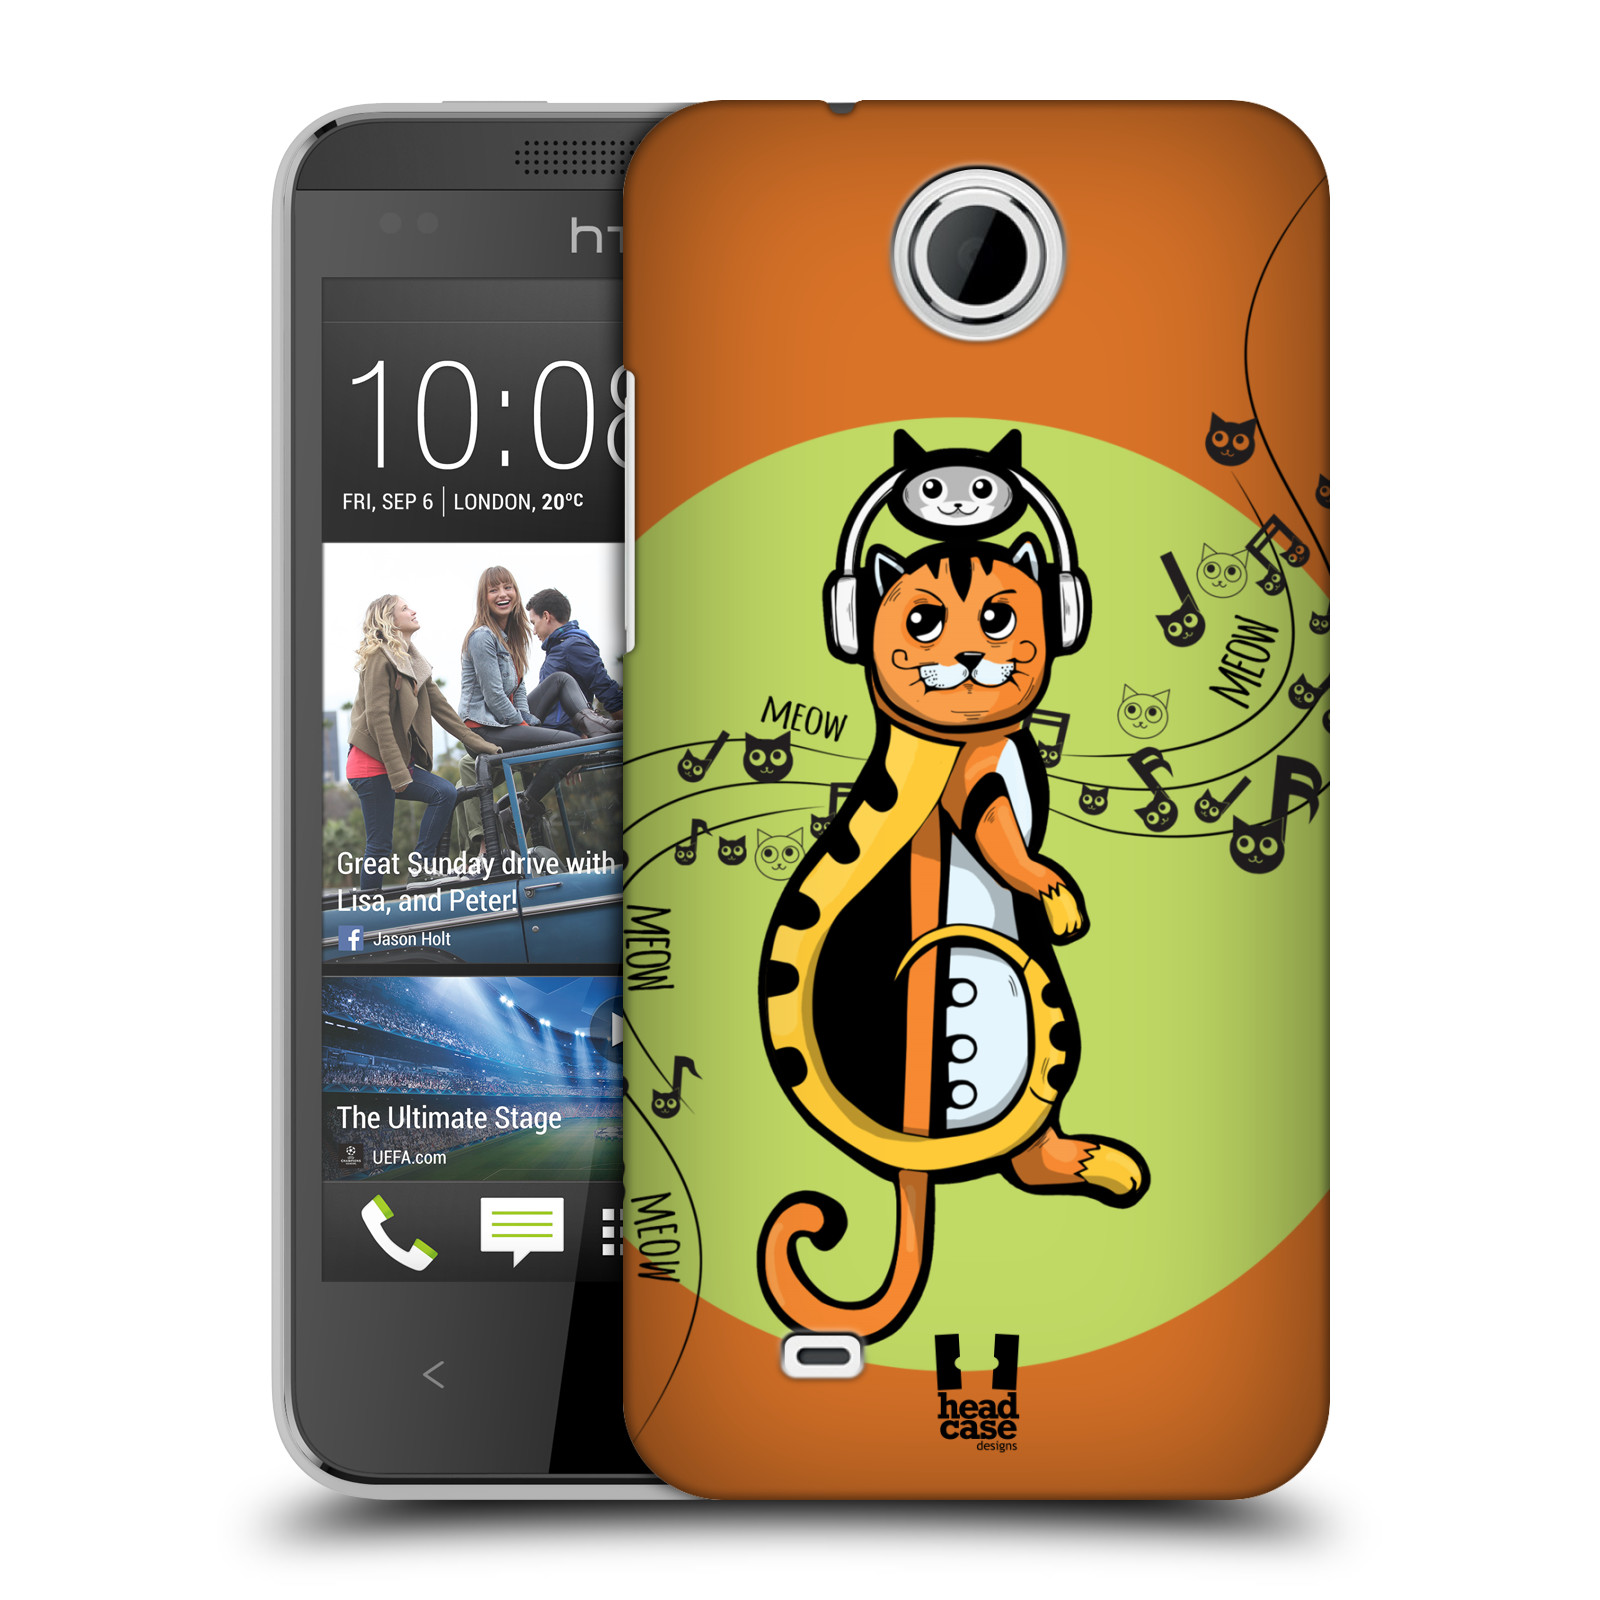 HEAD-CASE-DESIGNS-MEOW-SICAL-SYMBOLS-HARD-BACK-CASE-FOR-HTC-PHONES-3